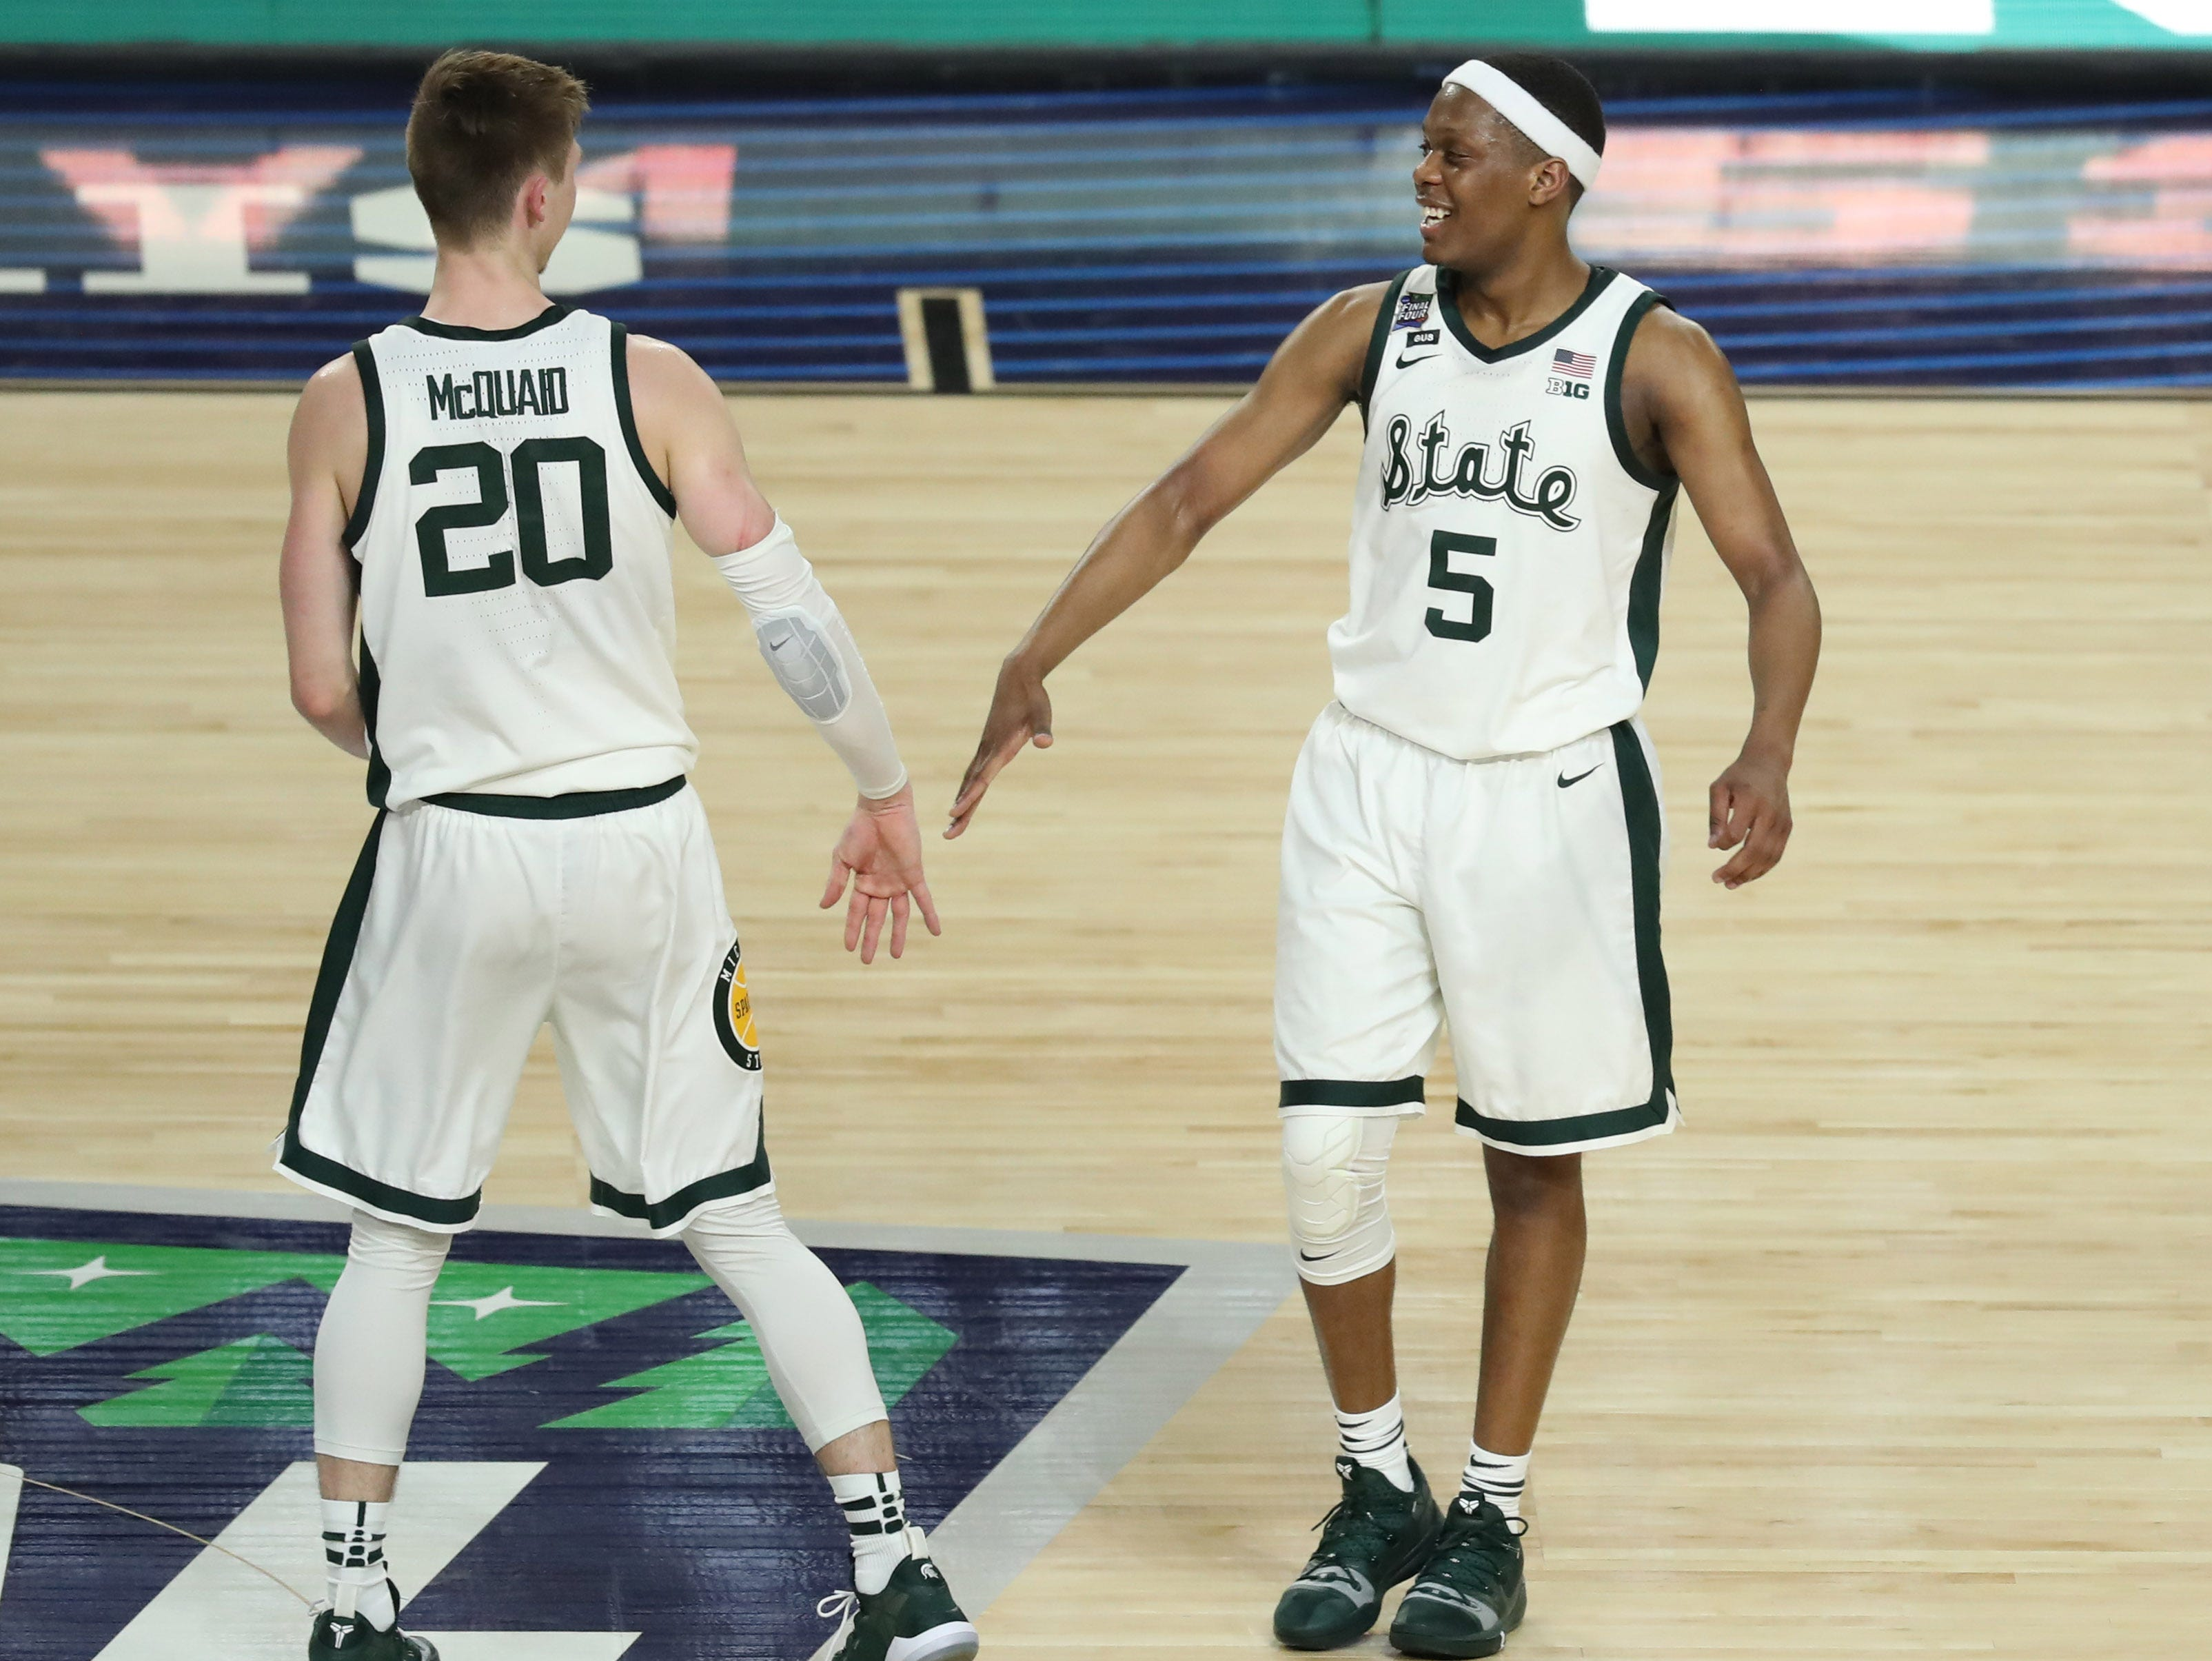 Apr 6, 2019; Minneapolis, MN, USA; Michigan State Spartans guard Matt McQuaid (20) and guard Cassius Winston (5) celebrate during the first half against the Texas Tech Red Raiders in the semifinals of the 2019 men's Final Four at US Bank Stadium. Mandatory Credit: Brace Hemmelgarn-USA TODAY Sports